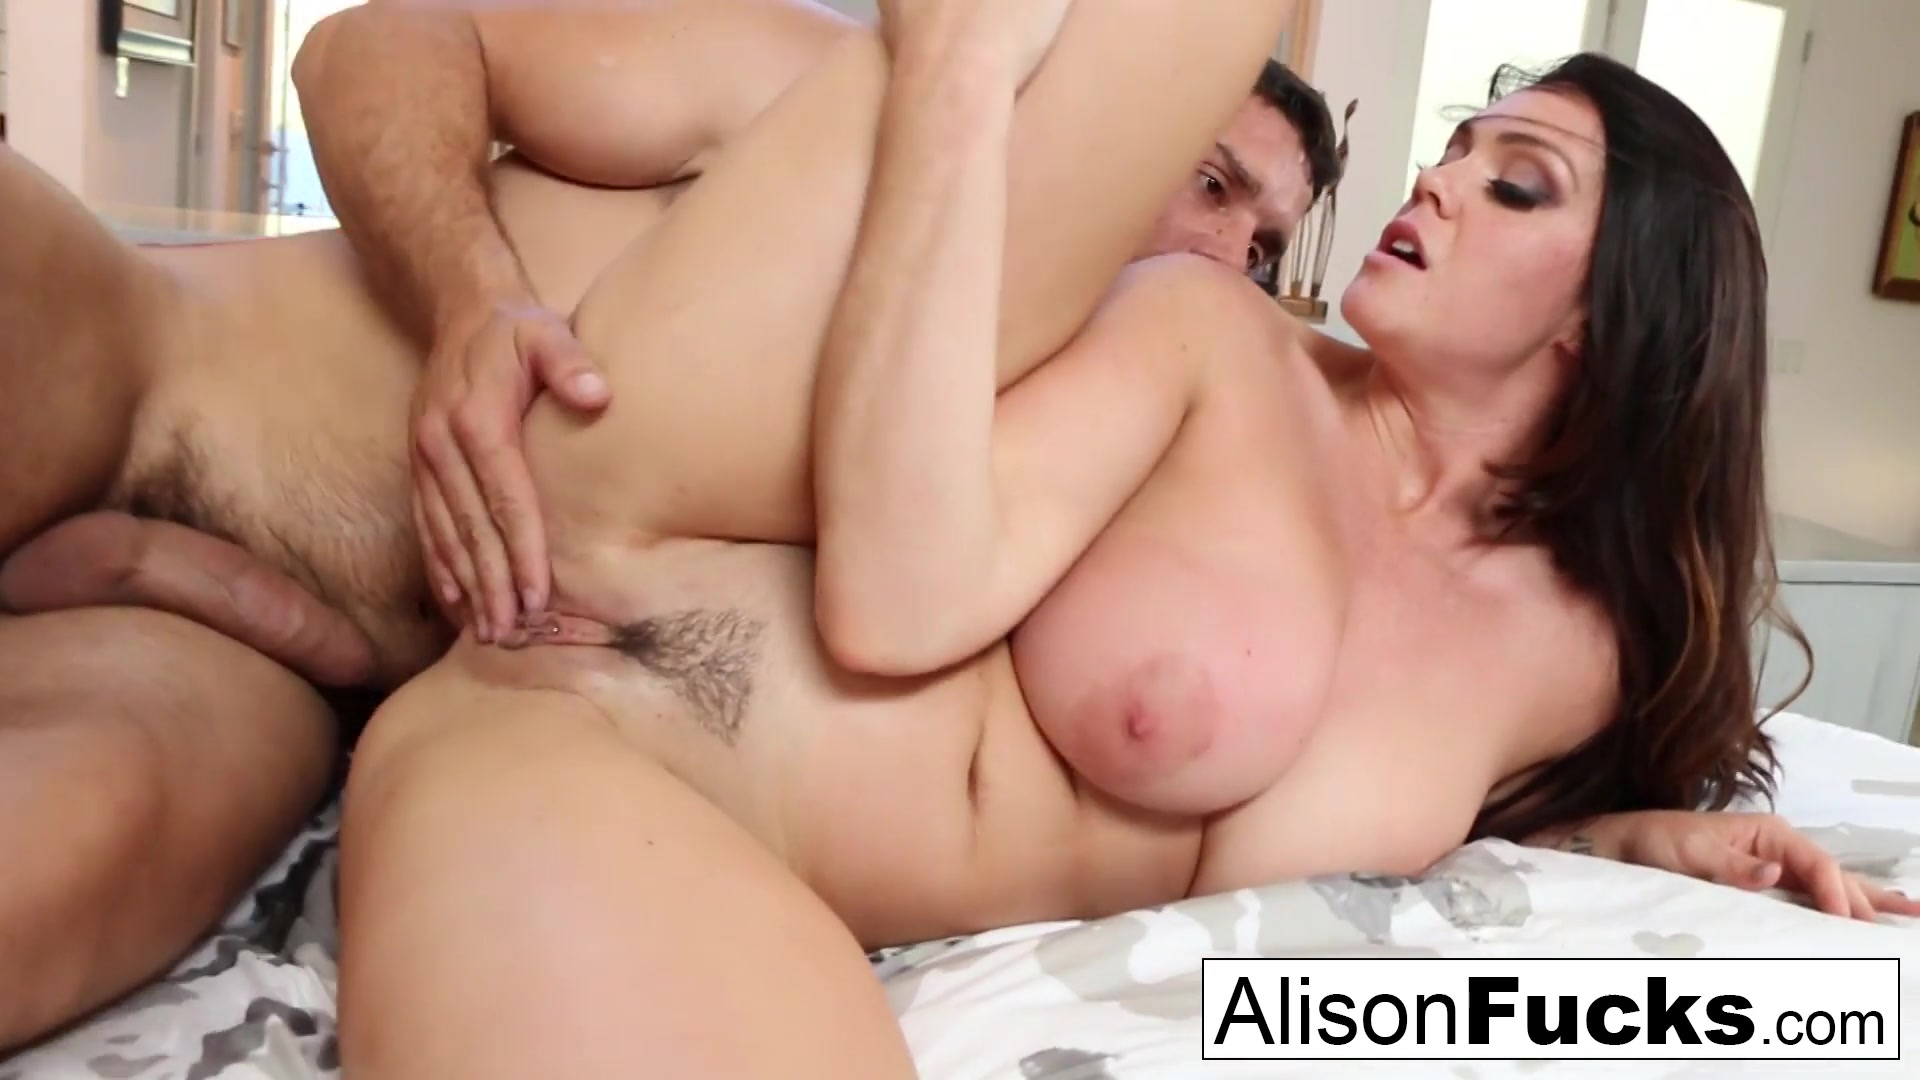 Alison Tyler in Amazing Rough Fuck With Alison Tyler And A Hung Spanish Stud - AlisonTyler How to find out if my wife is using hookup sites